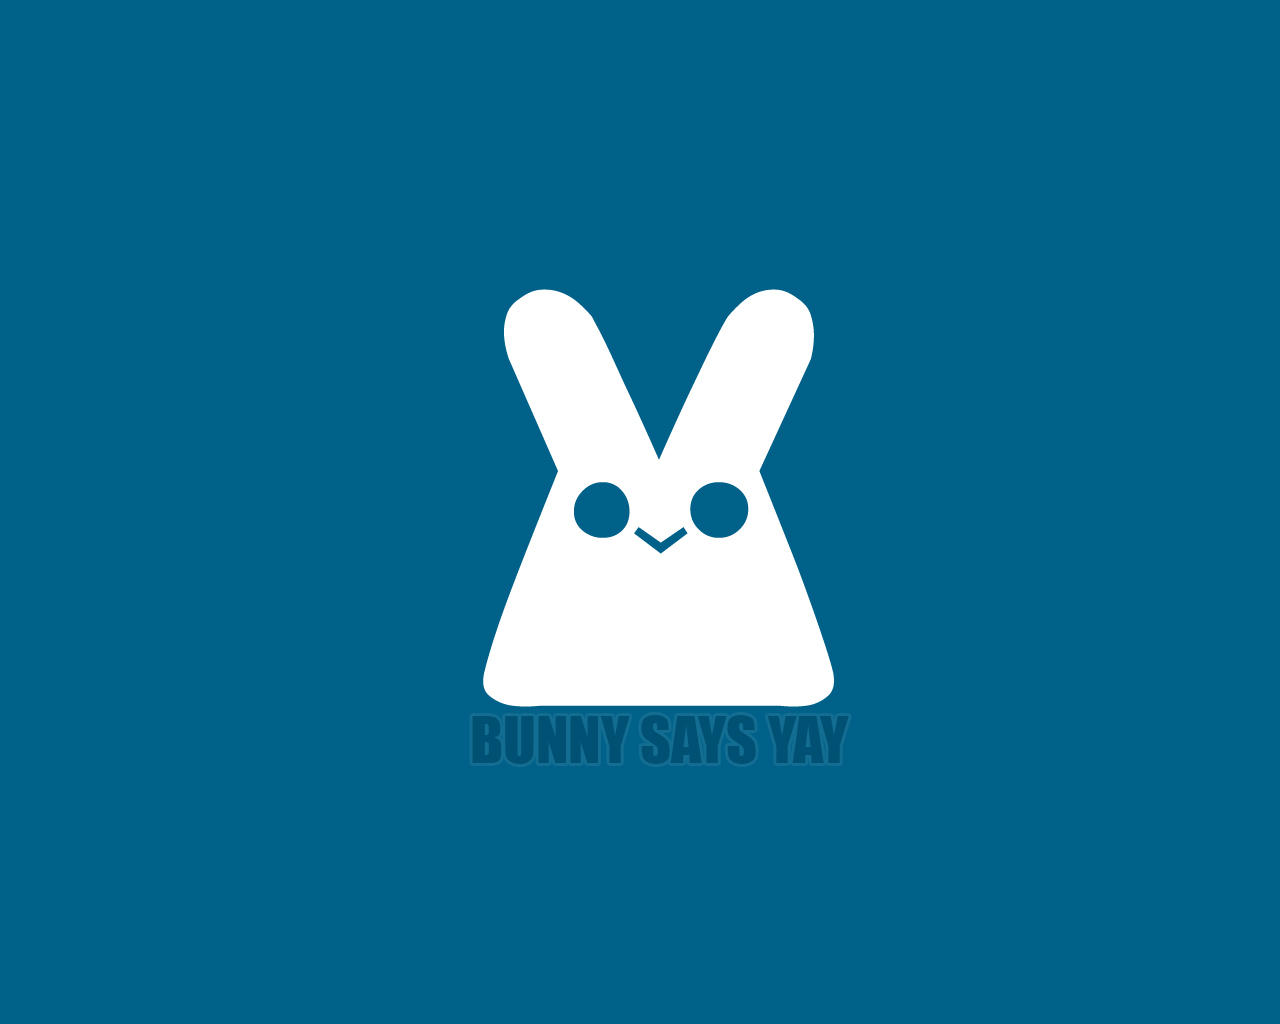 Bunny Says Yay by s3vendays